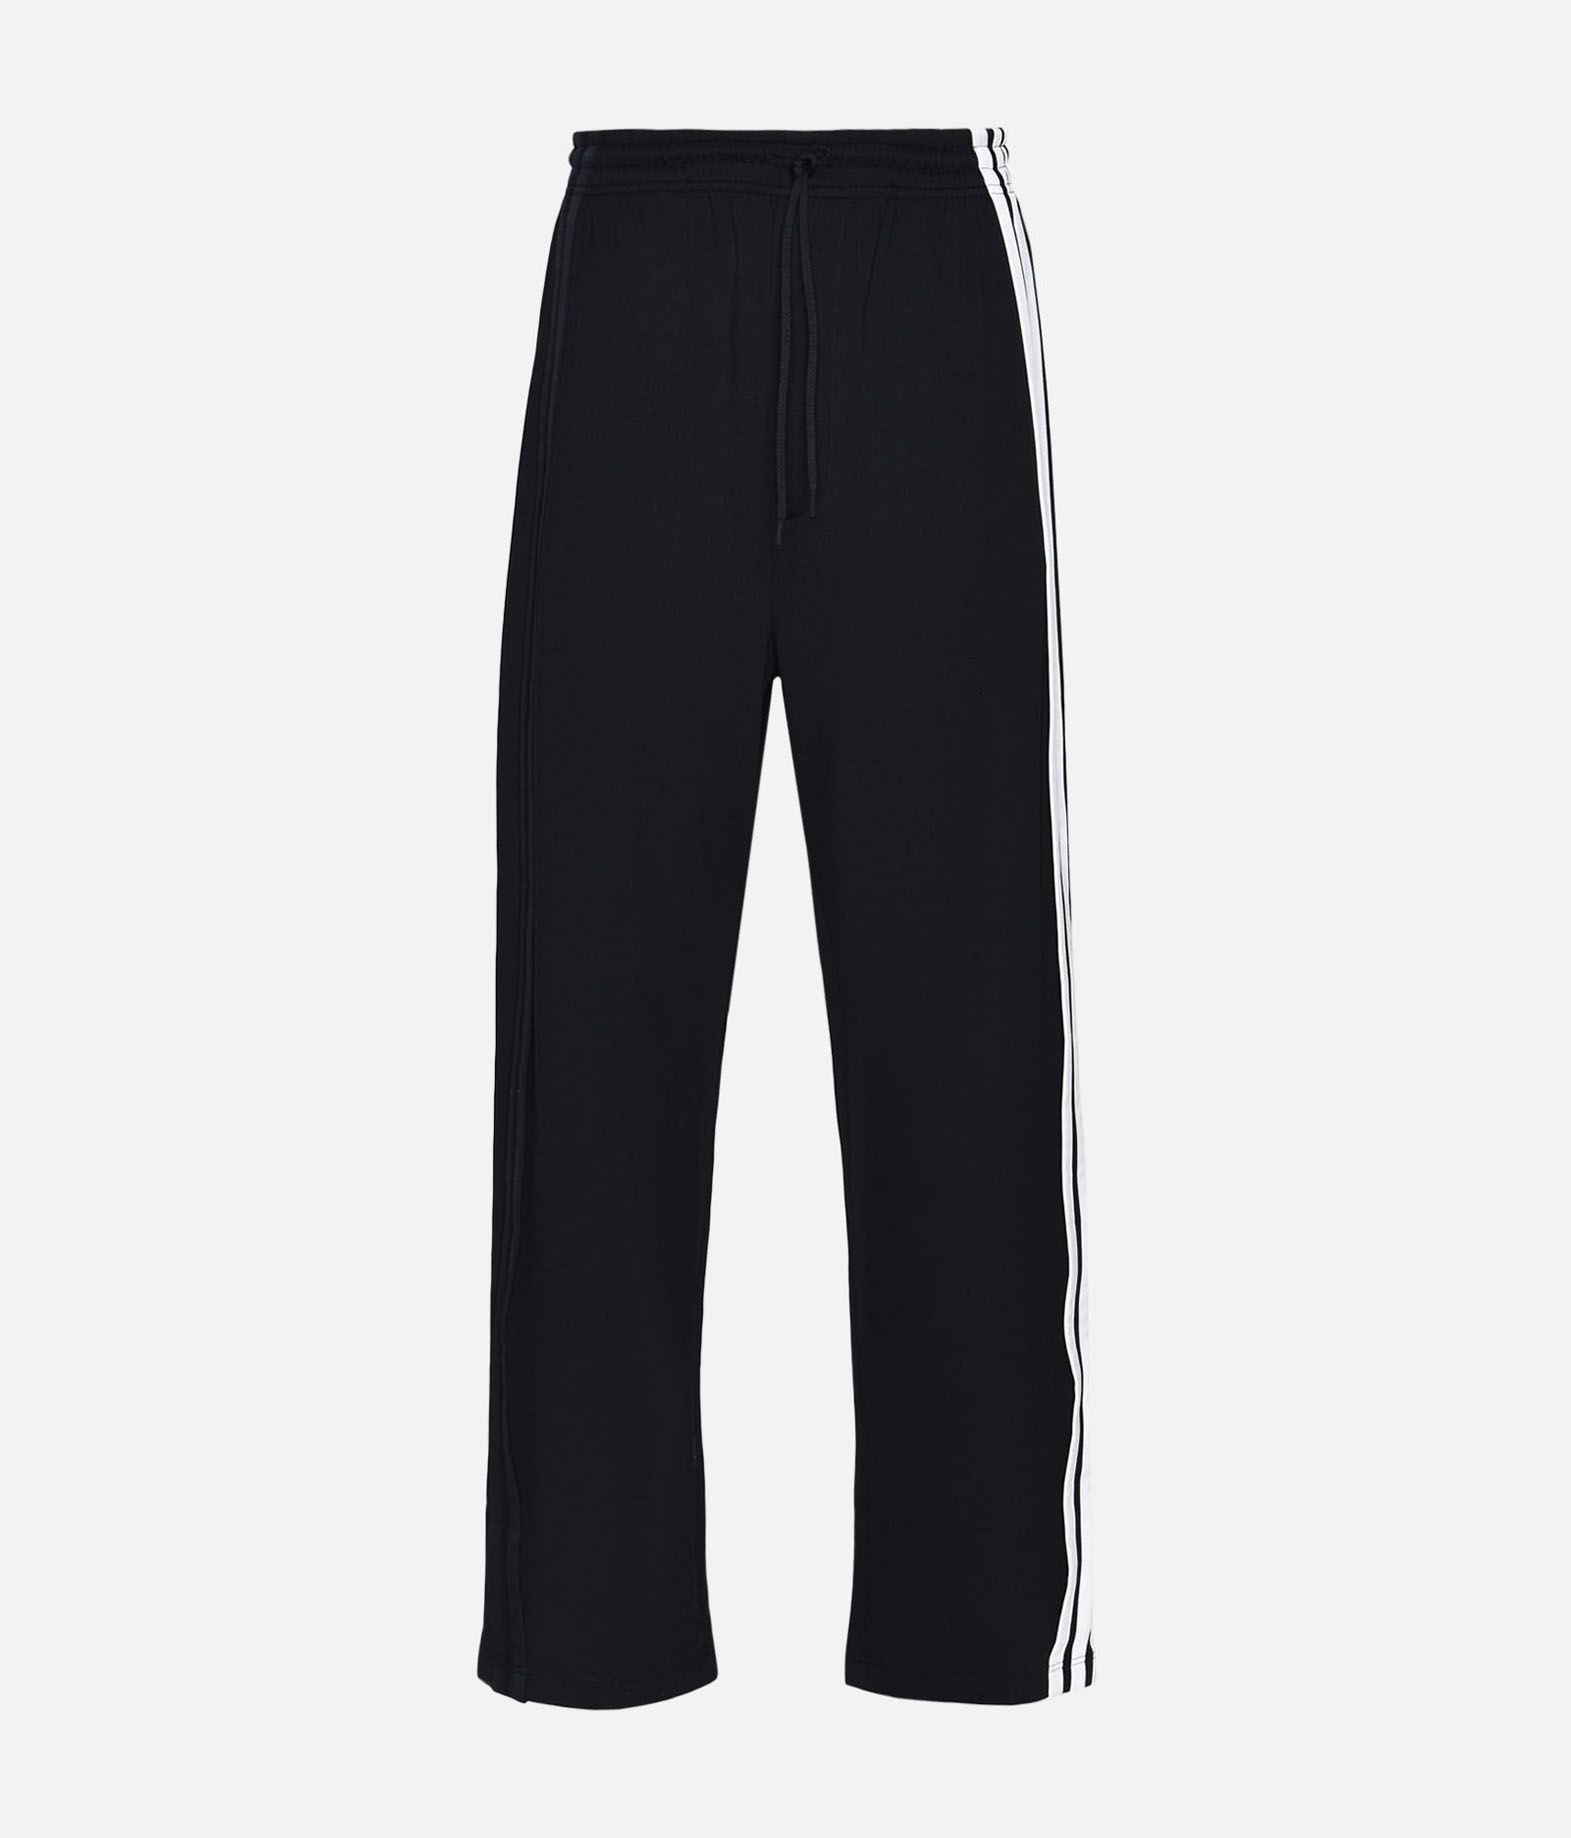 Y-3 Y-3 3-Stripes Selvedge Wide Pants Спортивные штаны Для Мужчин f